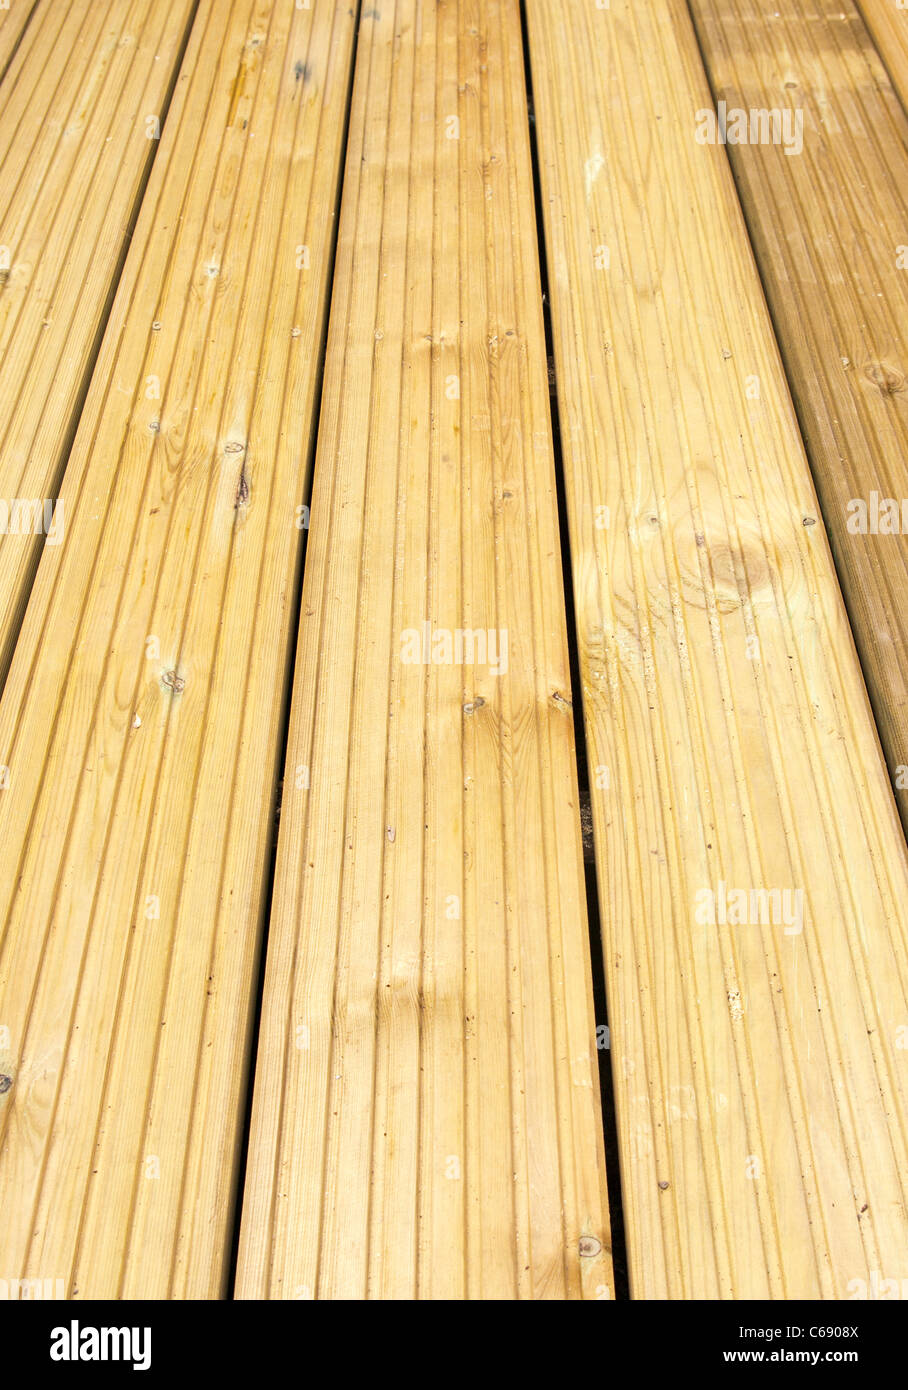 Softwood Garden Patio Decking - Stock Image